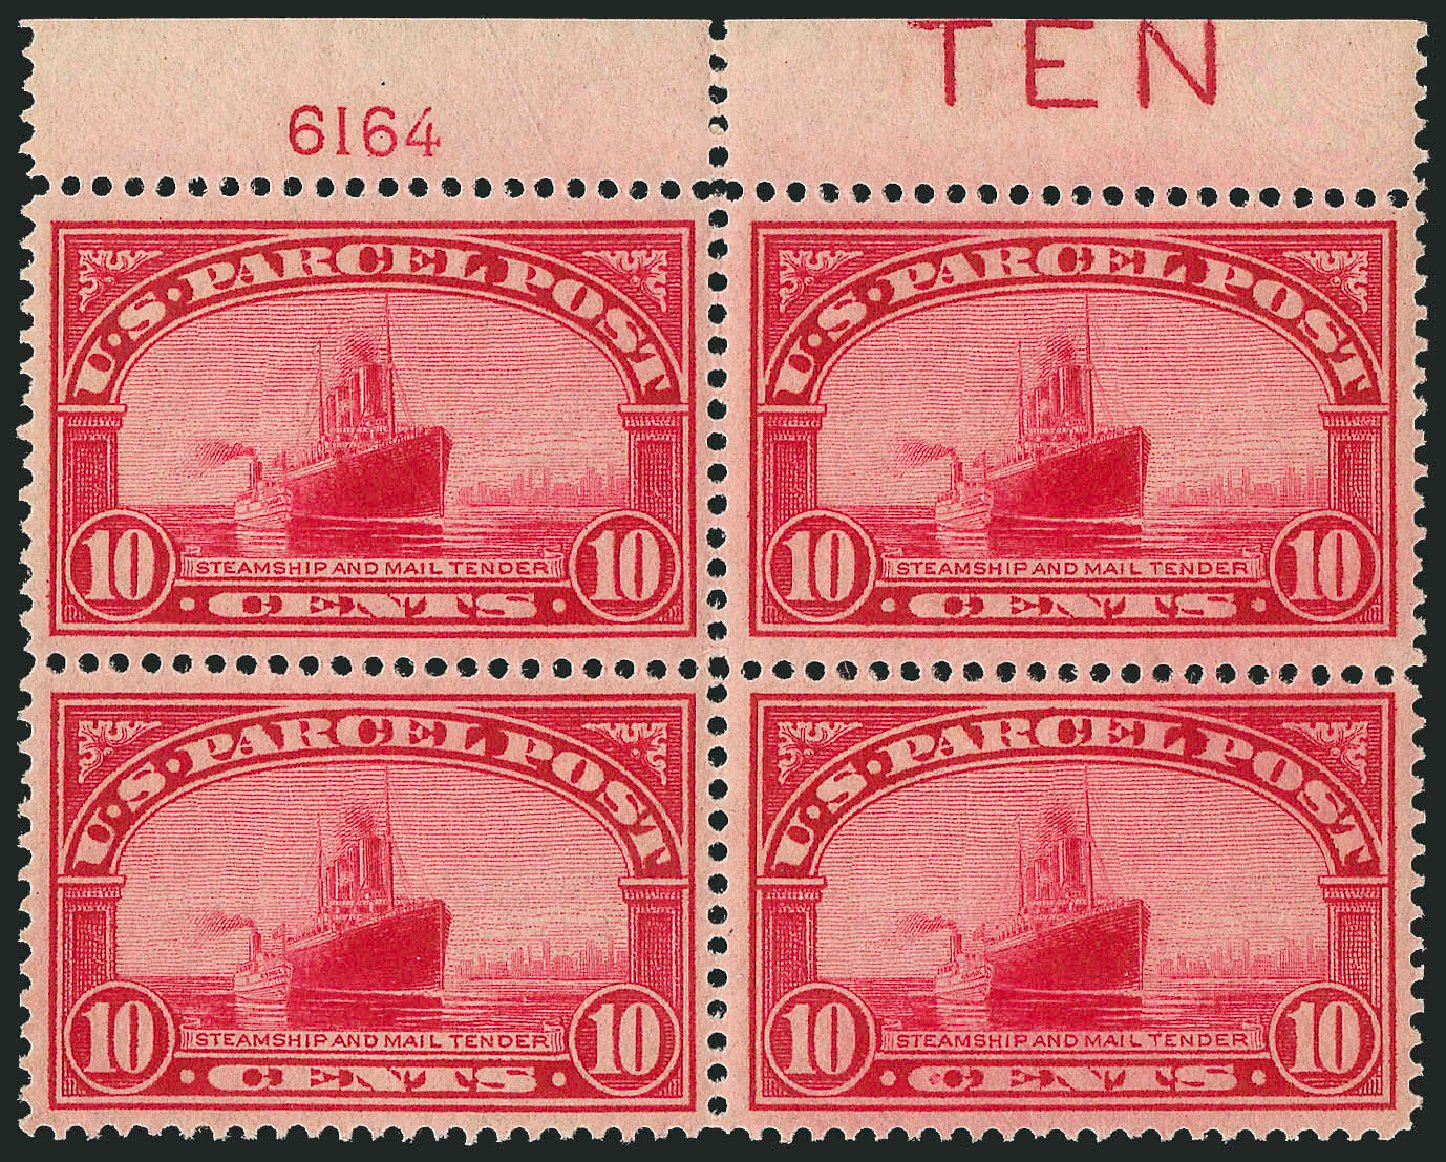 US Stamp Value Scott Catalog # Q6 - 10c 1913 Parcel Post. Robert Siegel Auction Galleries, Jul 2014, Sale 1077, Lot 474